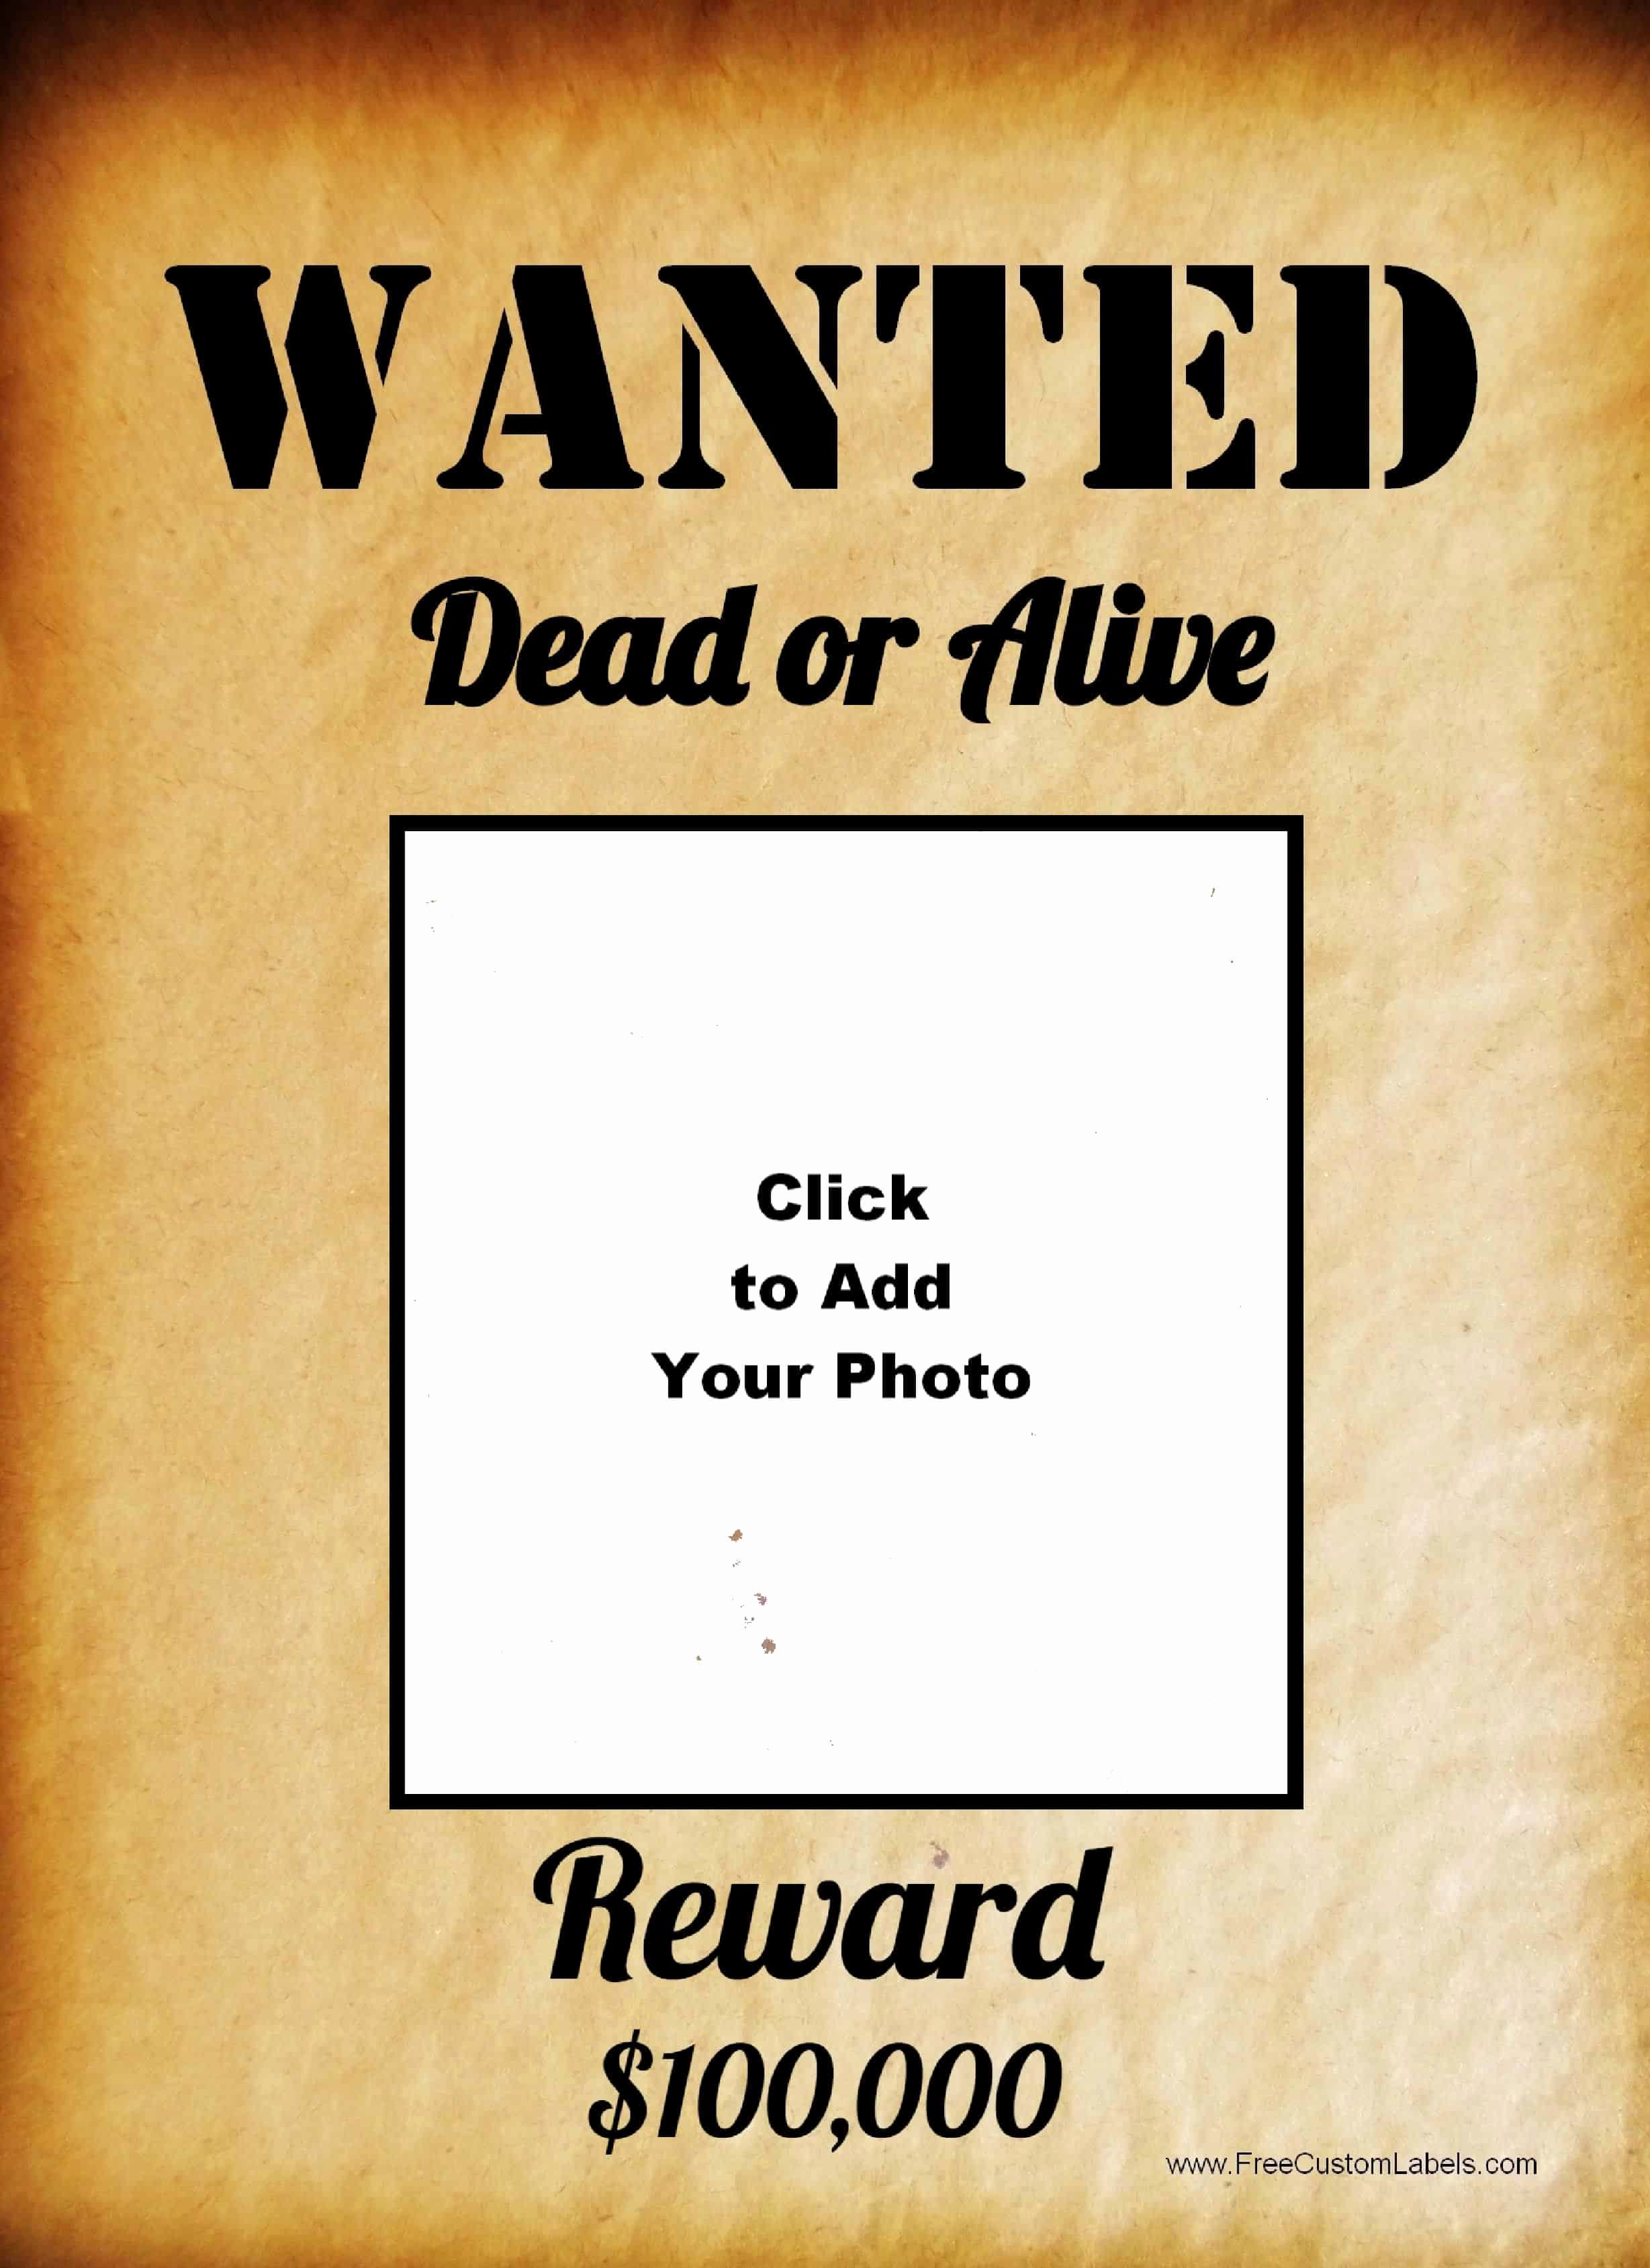 Free Wanted Poster Template Fresh Free Wanted Poster Maker